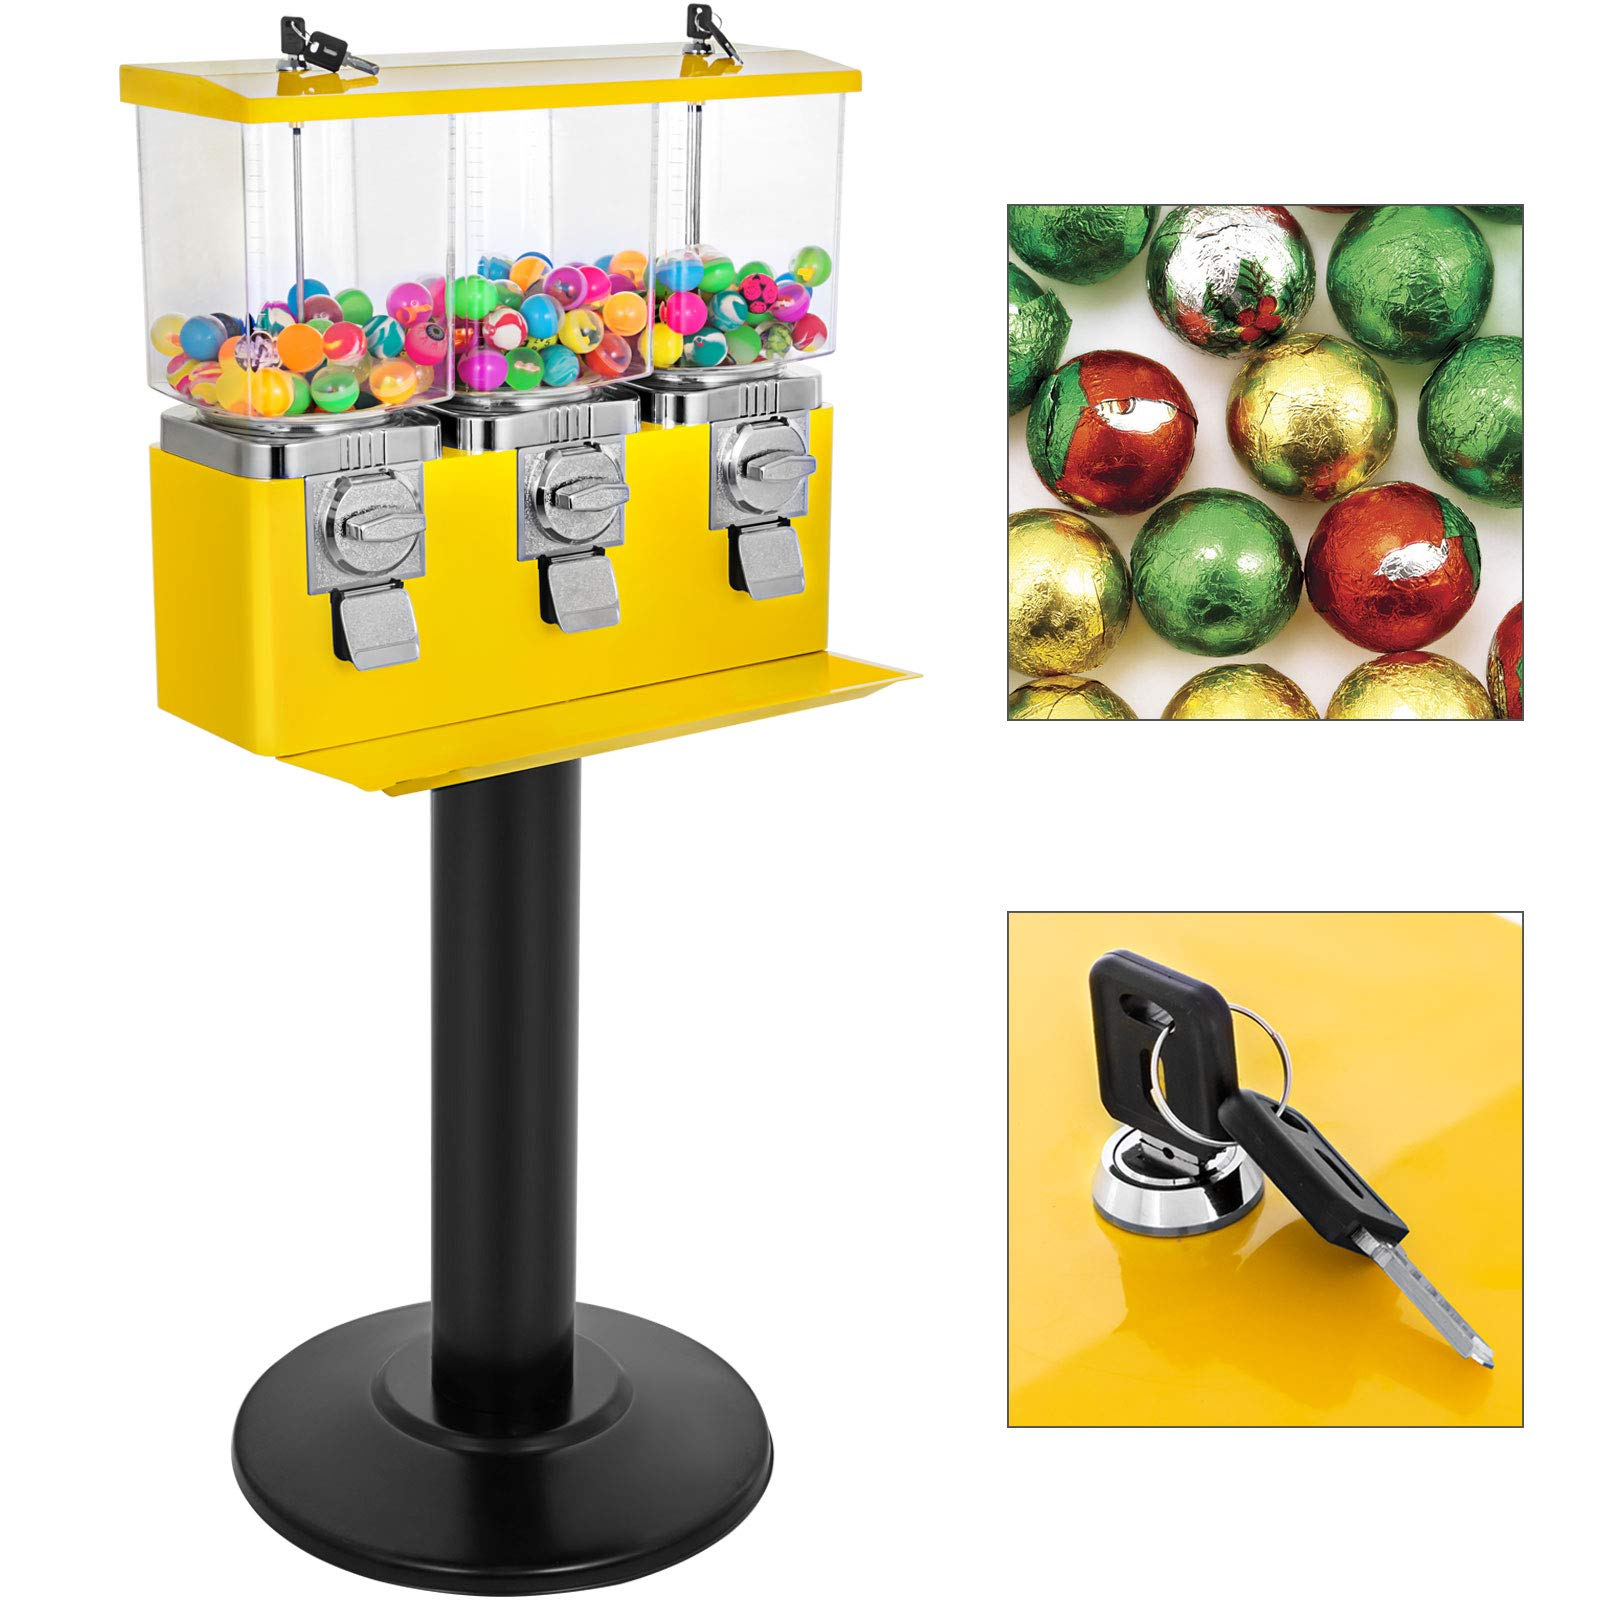 Mophorn Triple Head Candy Vending Dispenser Yellow Triple Pod Candy Gumball Vending Machine with Stand Heavy Duty Gumball Bank by Mophorn